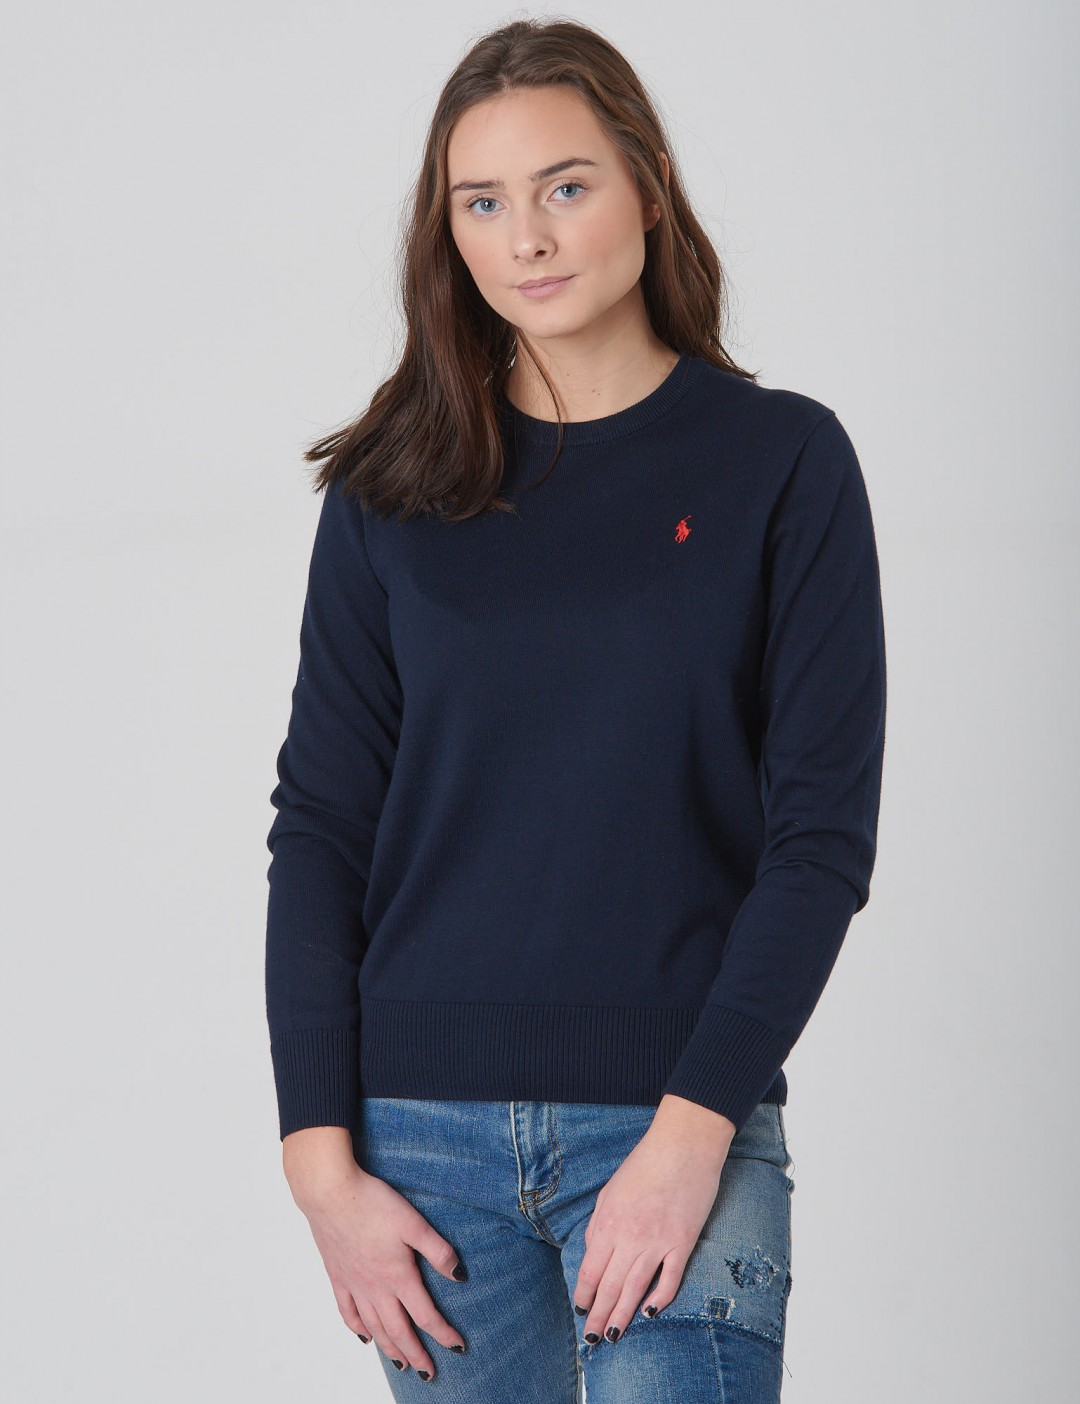 Ralph Lauren Barnkläder   Crewneck Tops Sweater   Blå. by Ralph Lauren